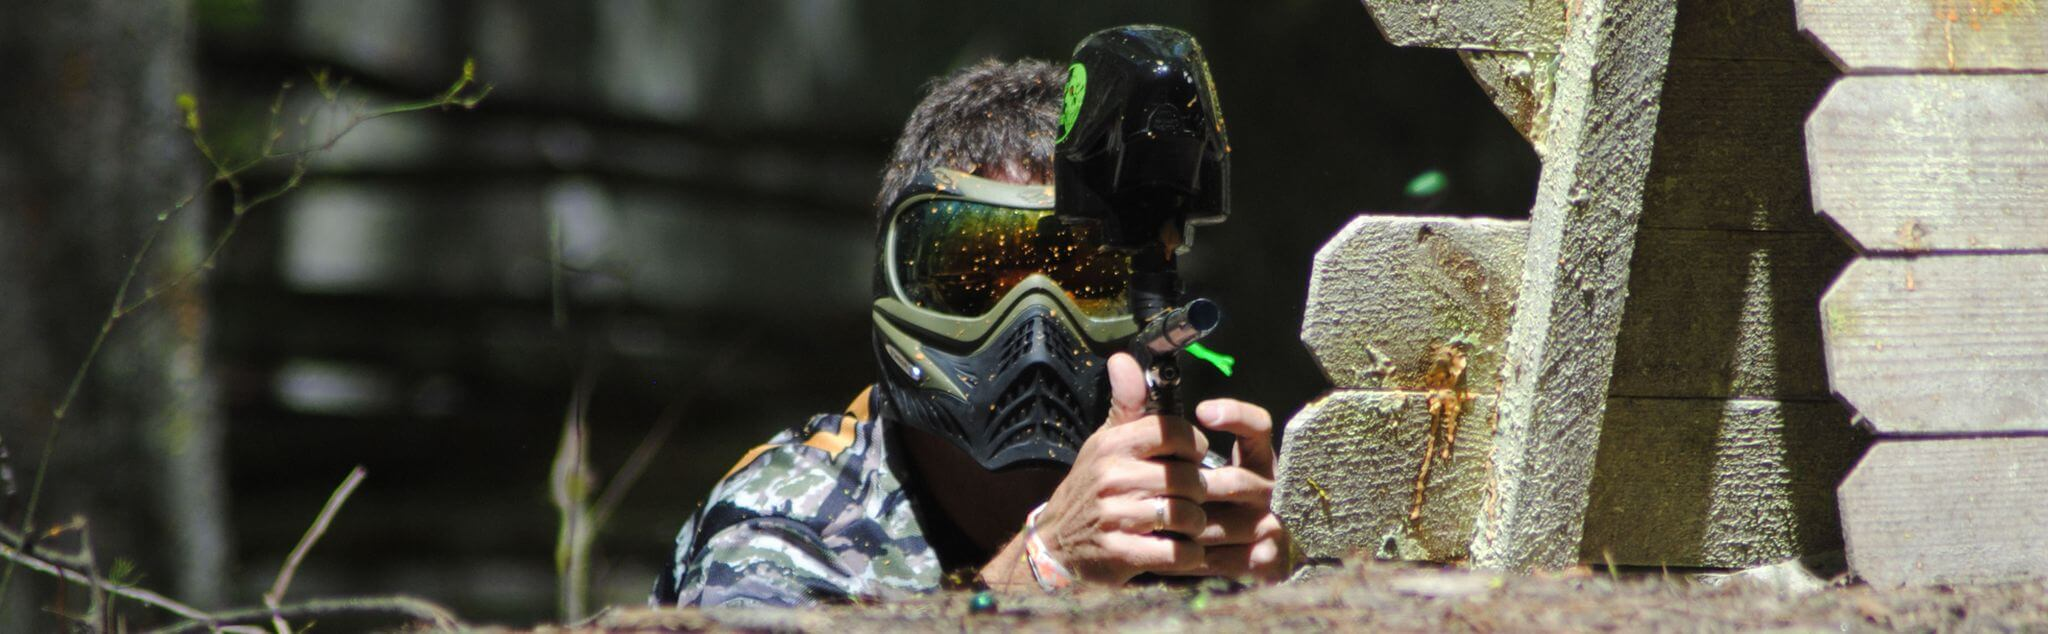 Paintball a Civitella San Paolo